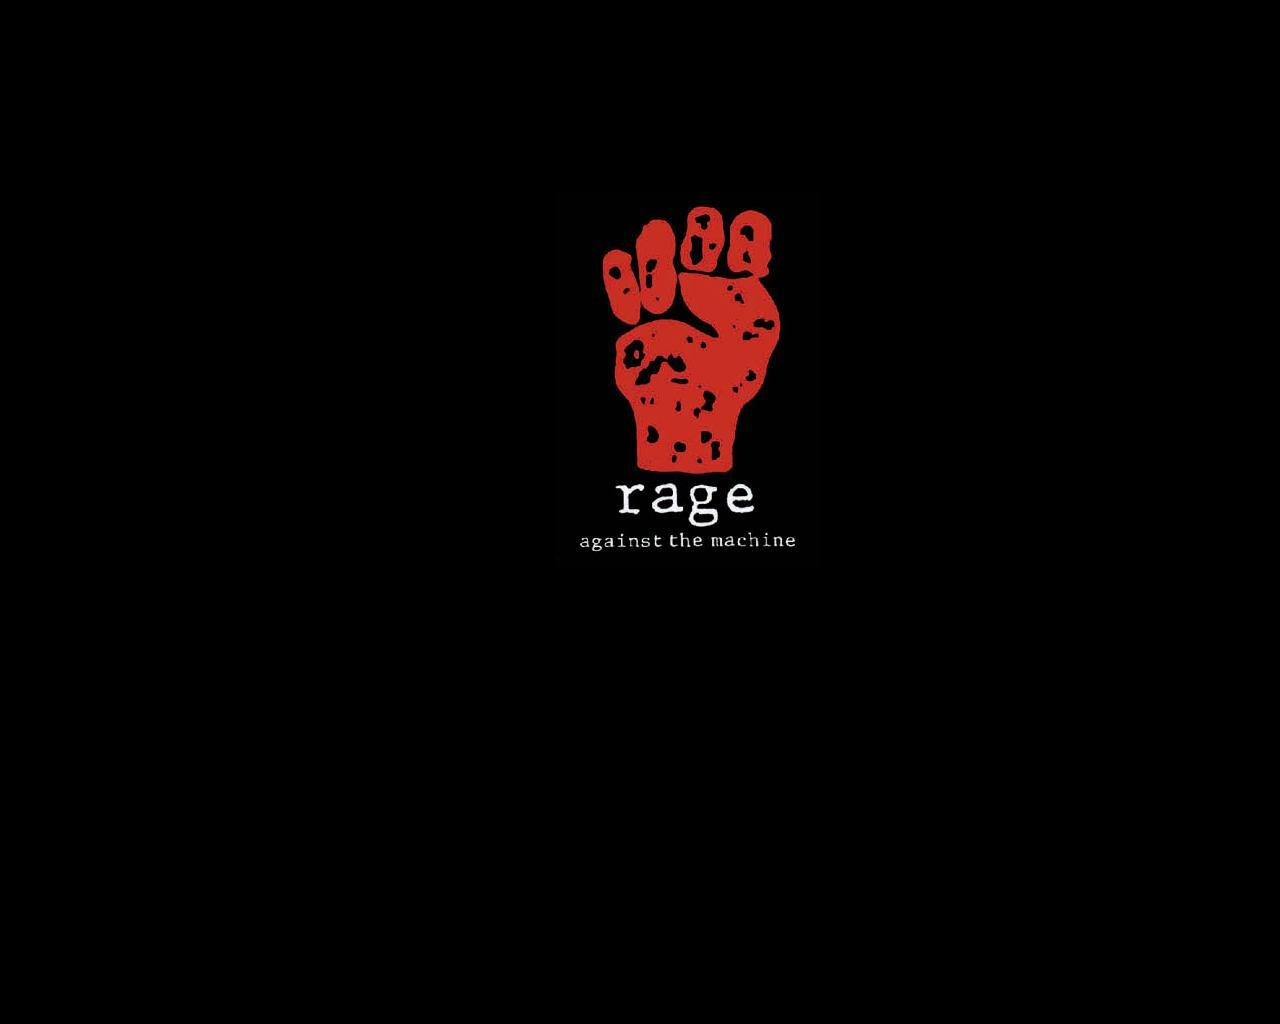 Rage Against The Machine Wallpaper 1920x1080 Posted By Samantha